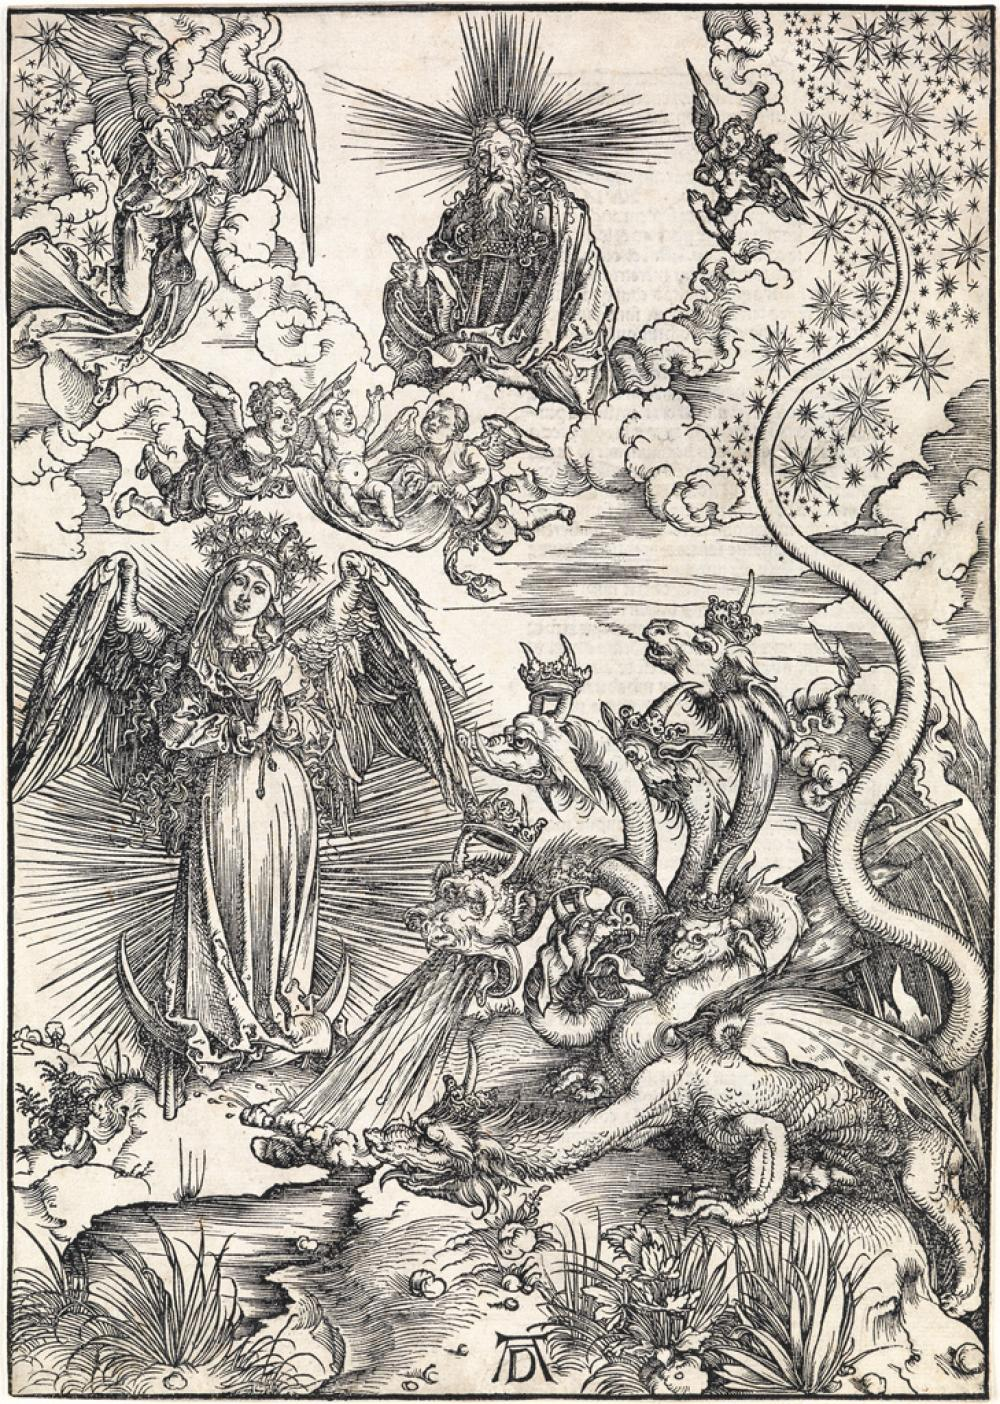 ALBRECHT DÜRER The Apocalyptic Woman.